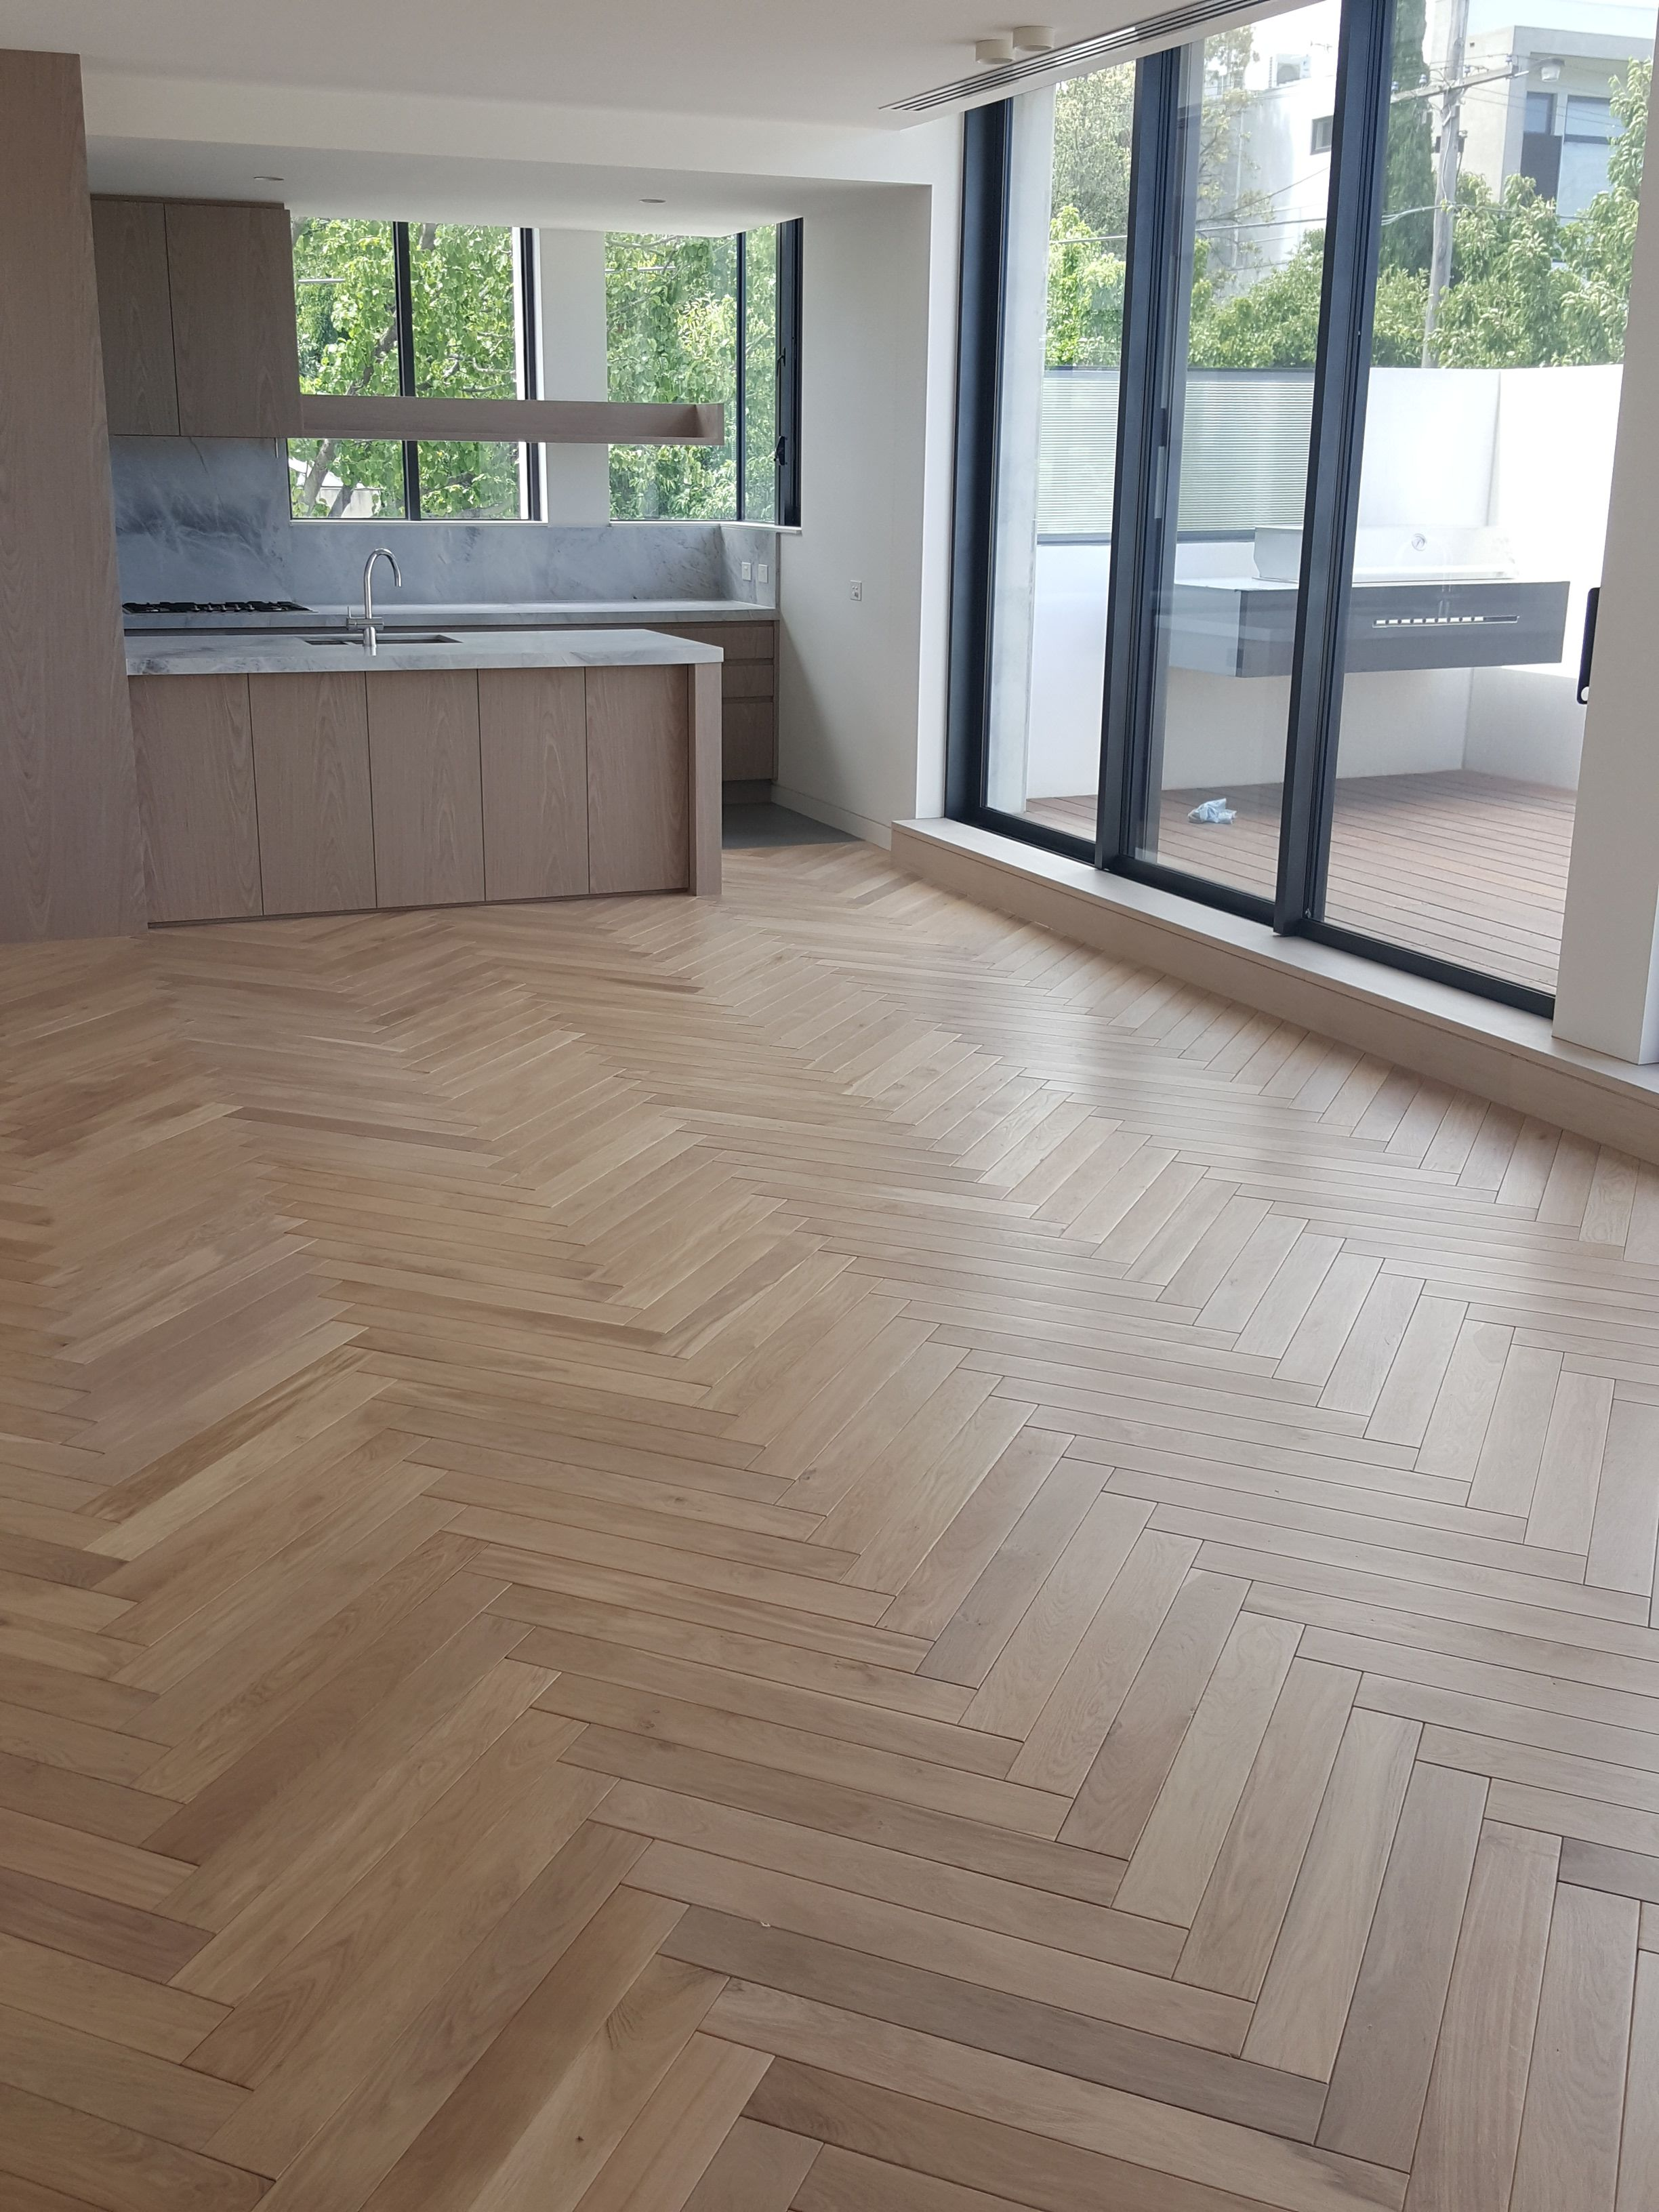 Fußböden Ideen Beautiful Herringbone Parquet In Toorak 700x90x18mm Solid Oak